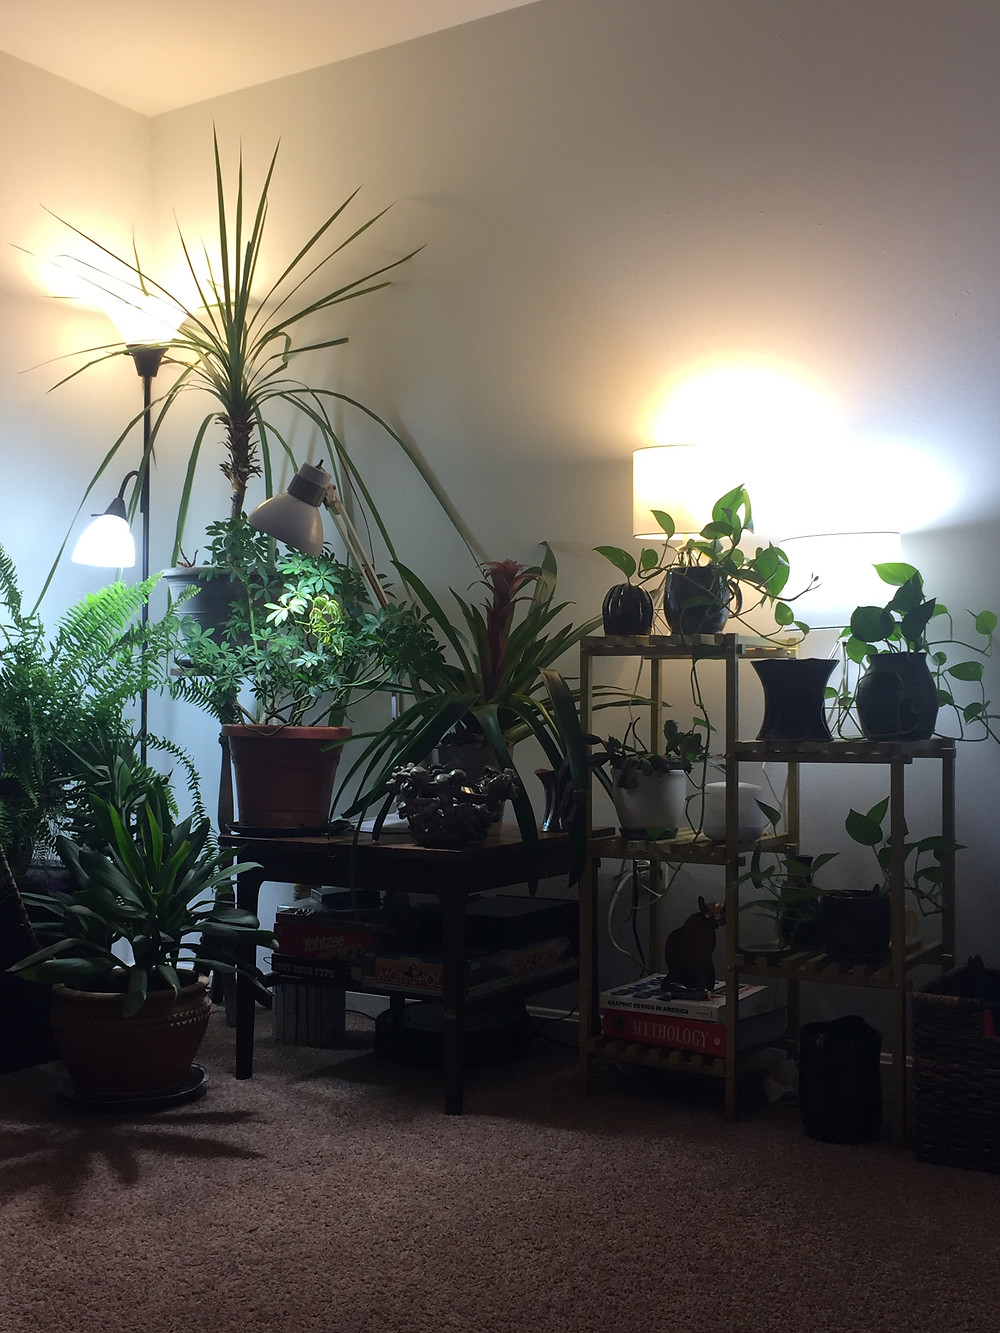 A plethora of house plants